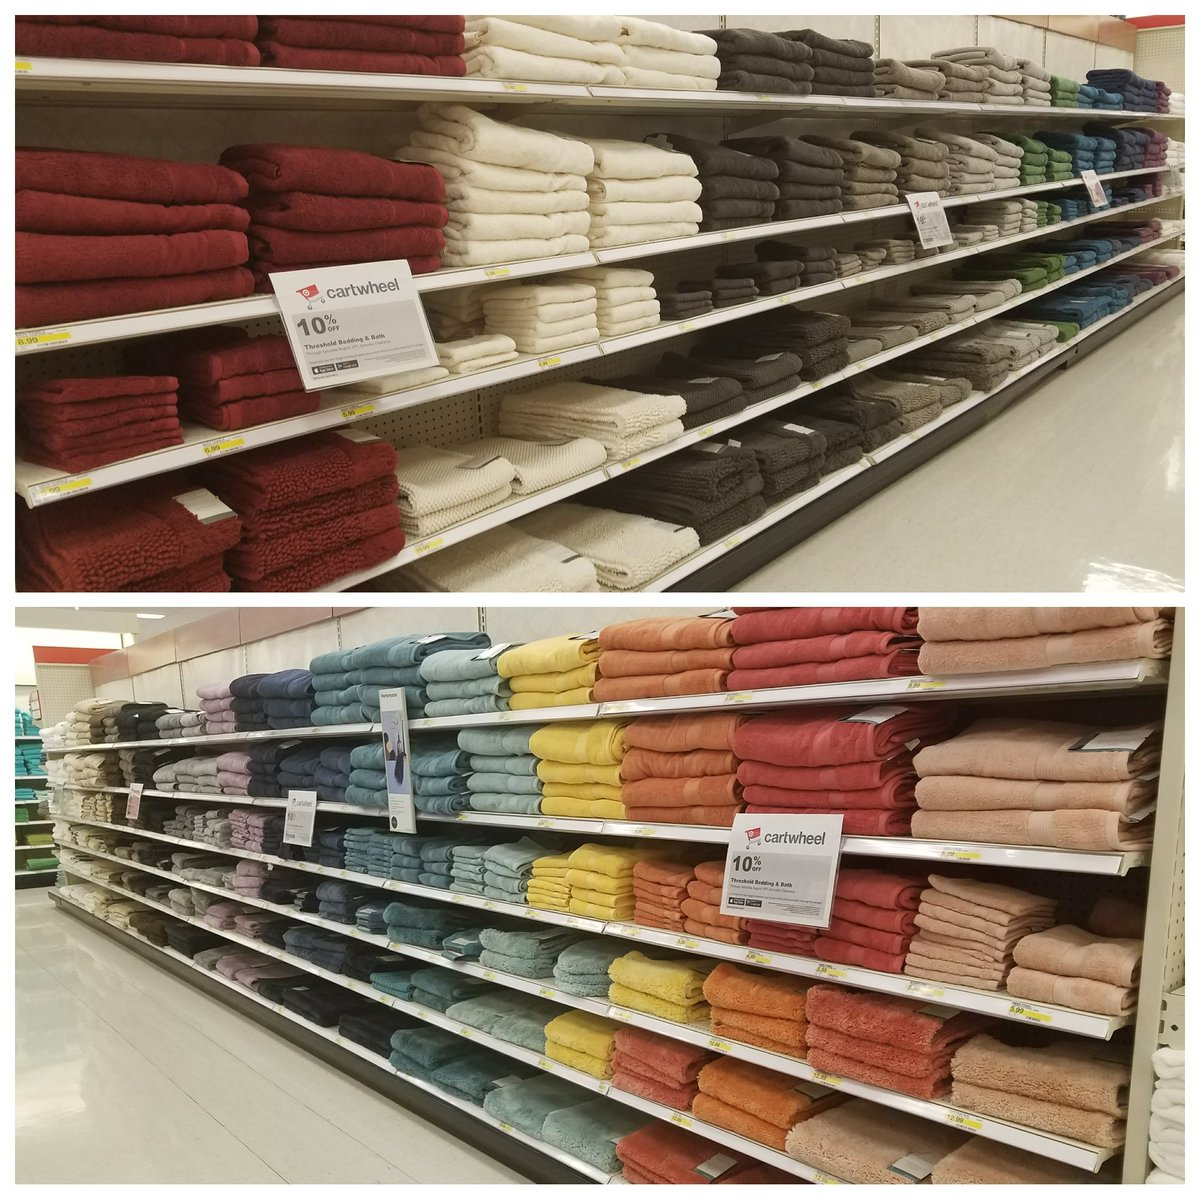 Shining bright &amp; shouting cartwheel deals in our Threshold bath, bedding &amp; decor just in time for BTC week! #T2320ModelStore #D303 #G392 <br>http://pic.twitter.com/sklBjGumSU